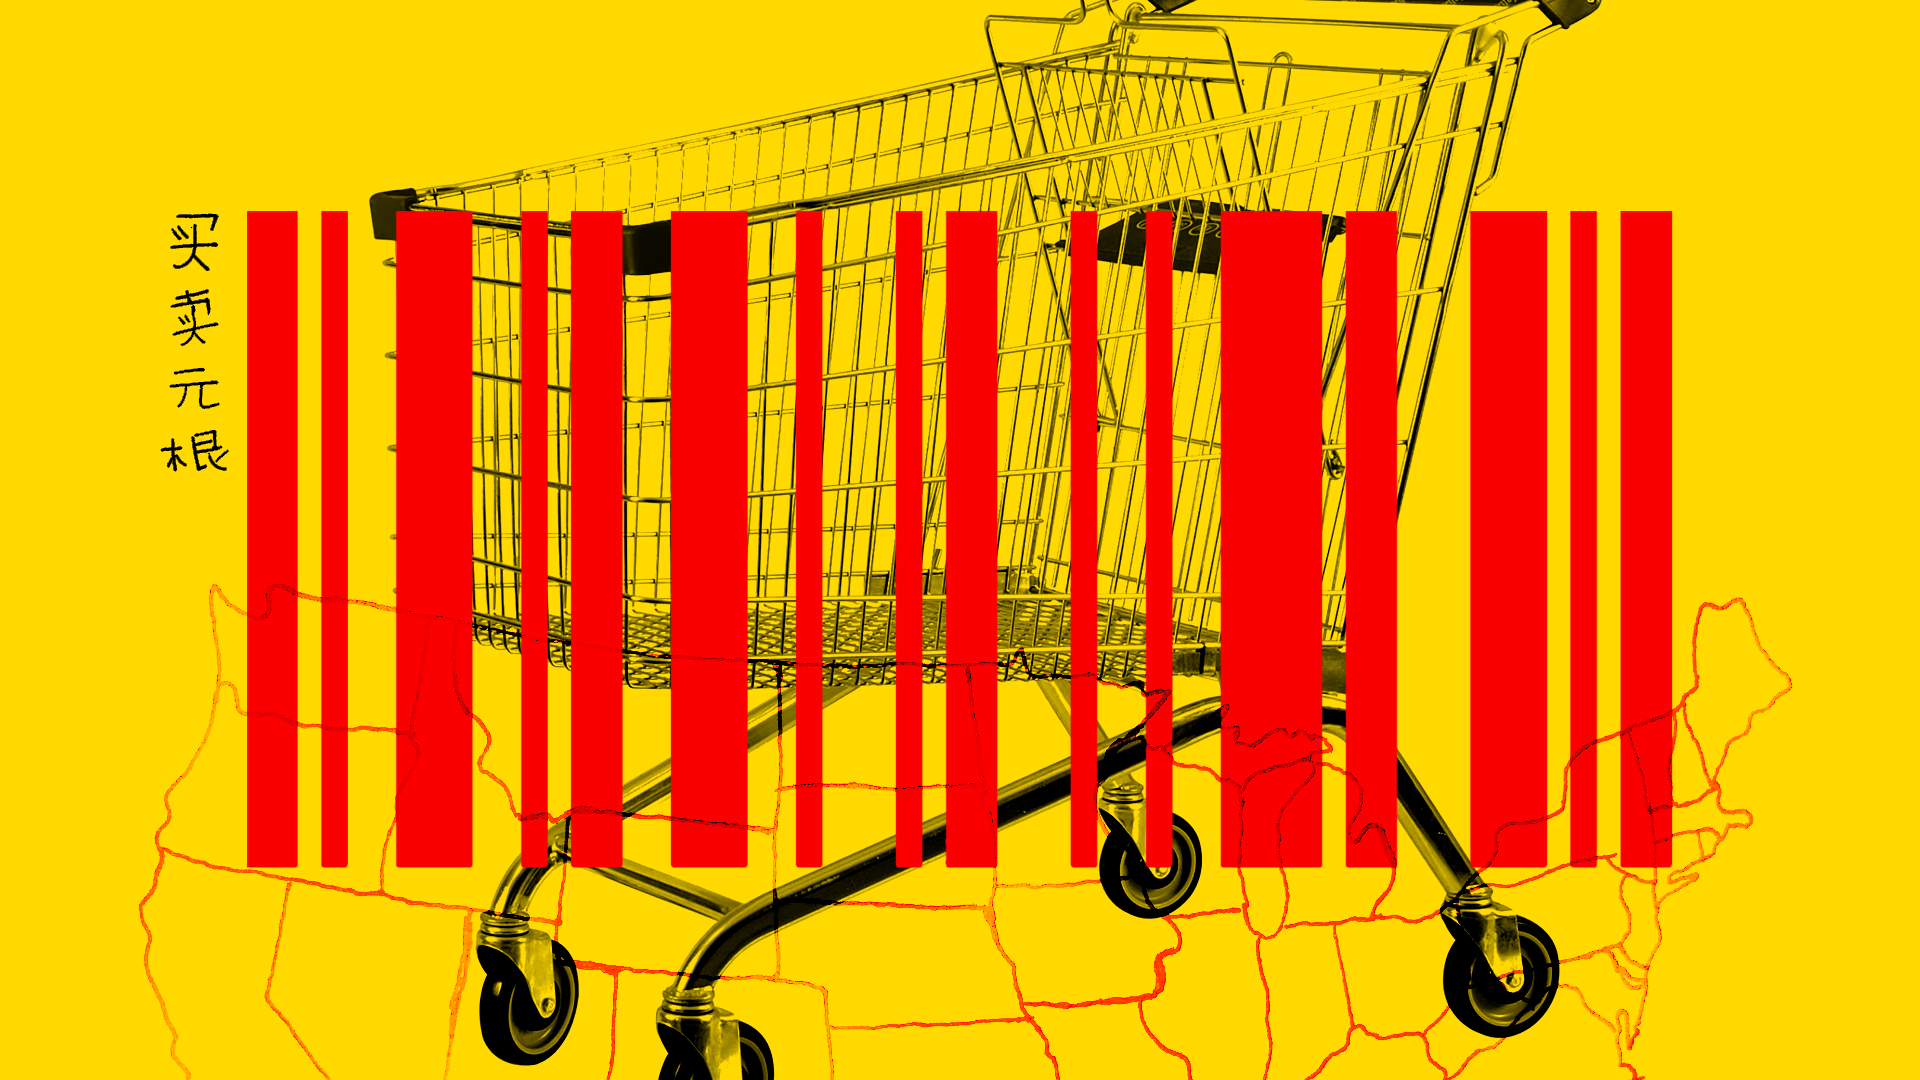 A shopping cart with a bar code looking like the Chinese flag